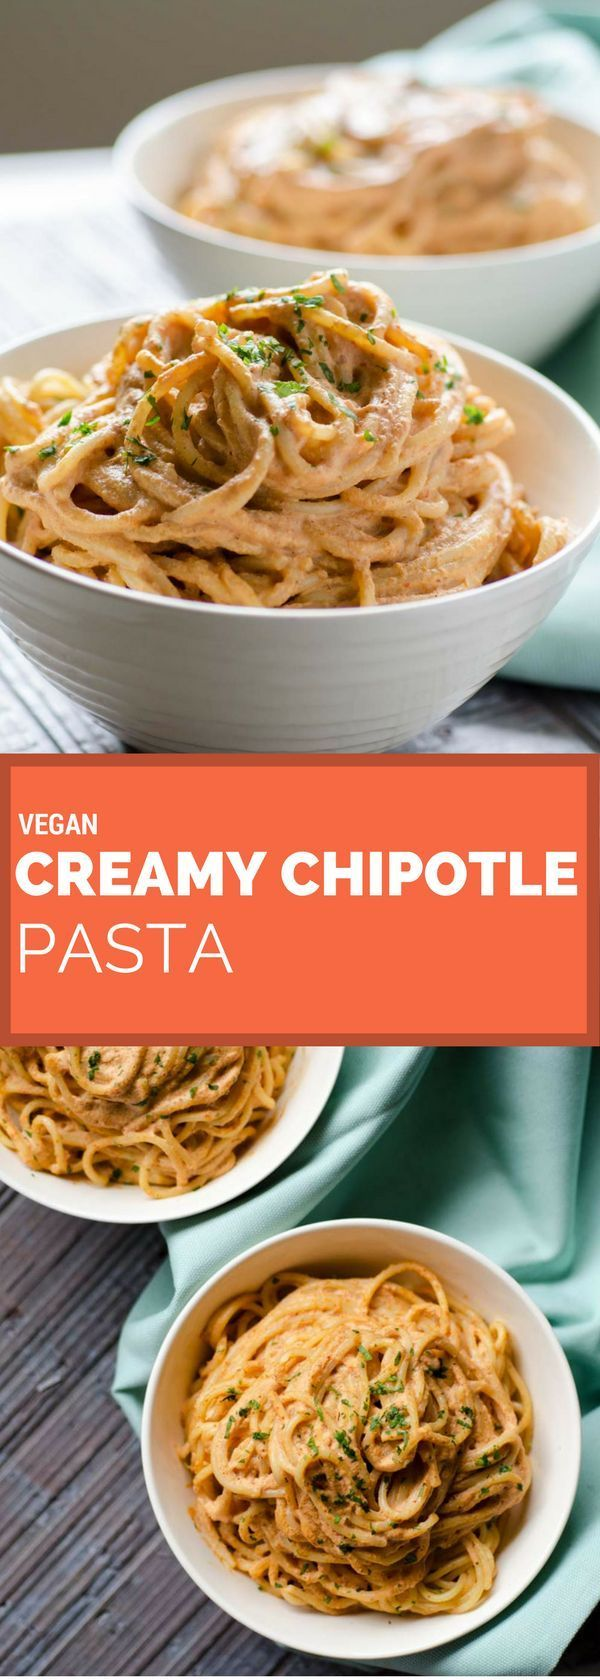 This vegan creamy chipotle pasta is so easy to make. The smokiness of the chipot…